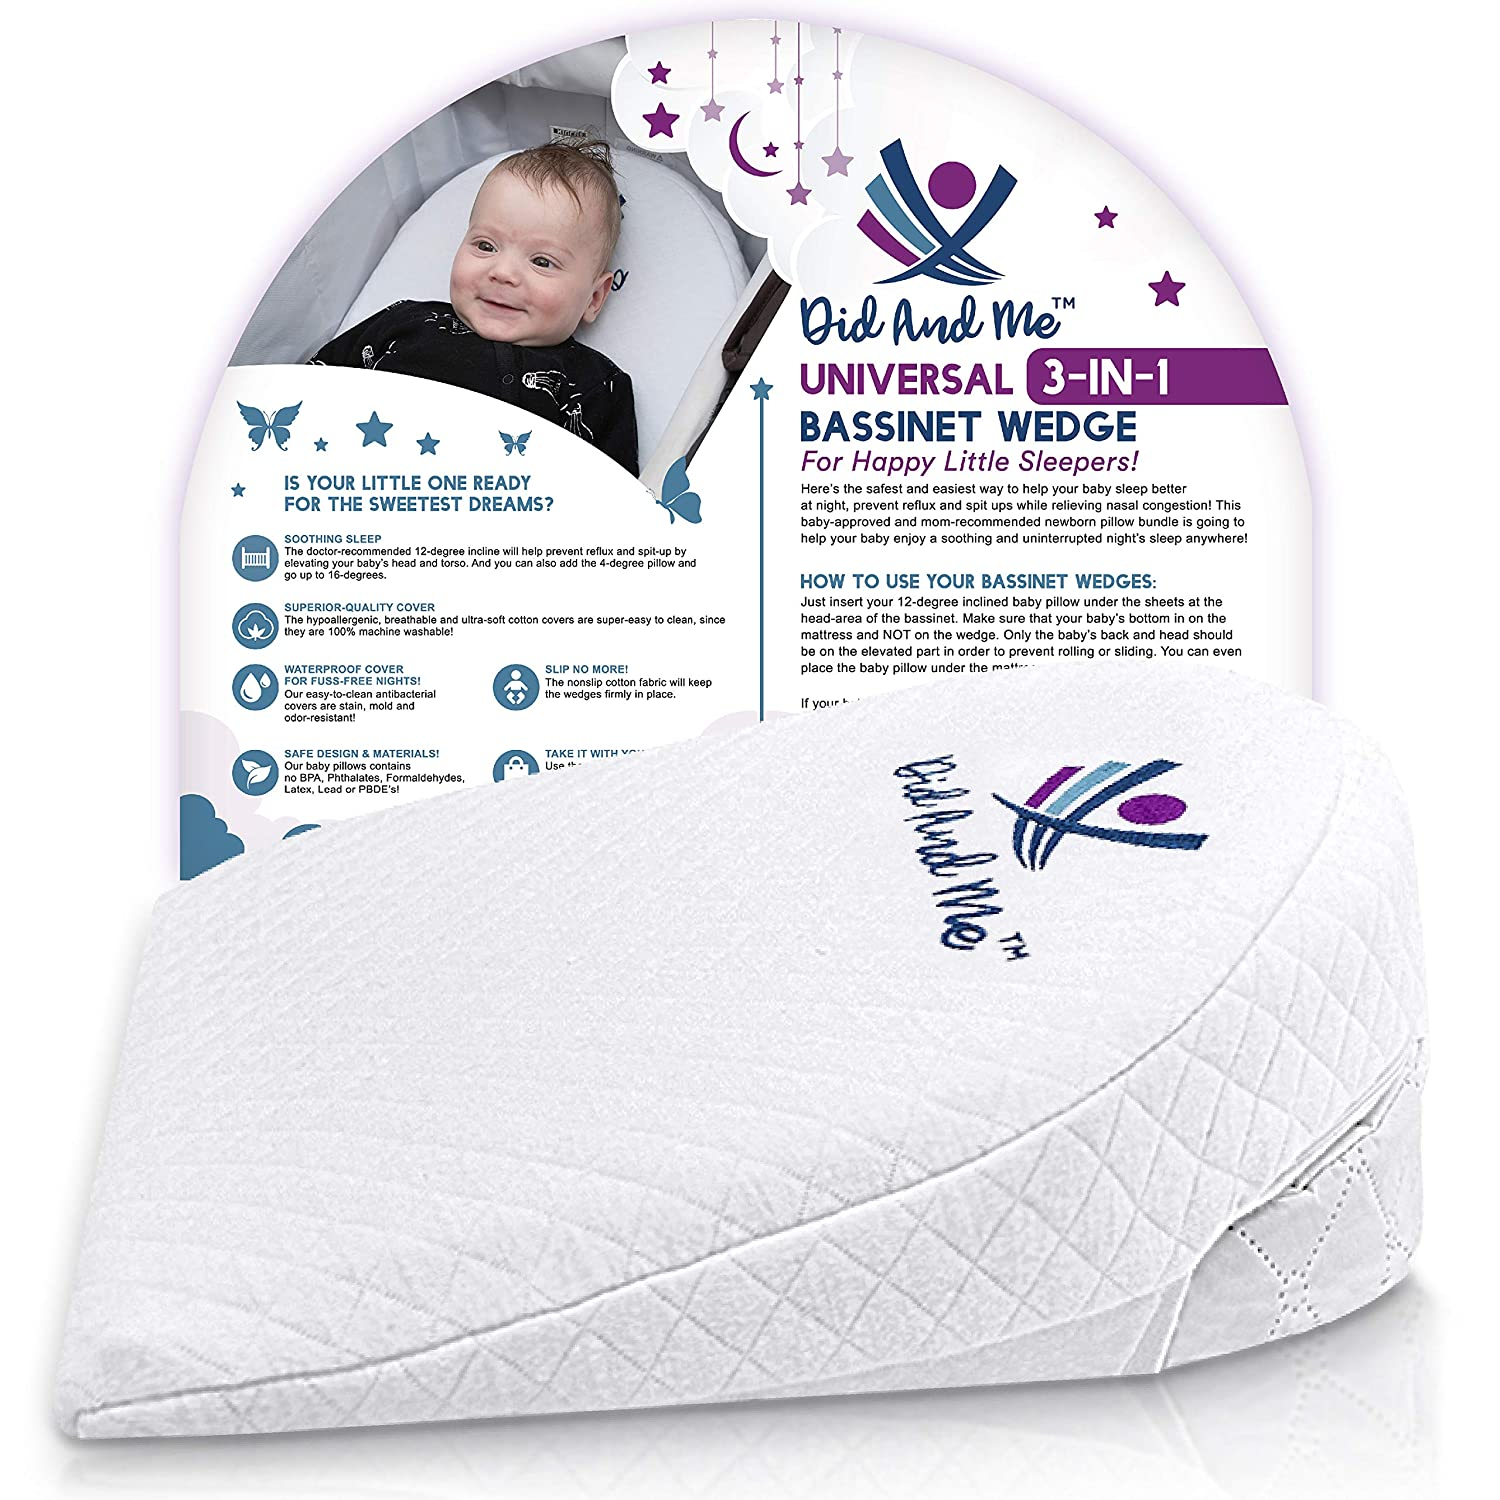 Bassinet Wedge Pillow for Baby - Universal - 3 Elevation Options for Better Sleep | Aids in Relieving Reflux | Nasal Congestion | Feeding - Happy Baby and Happy Parents - Cotton Fabric w/Carry Case  Sleep Pillows for Babies: Tips on choosing a pillow for your baby 91fiWaPC72L